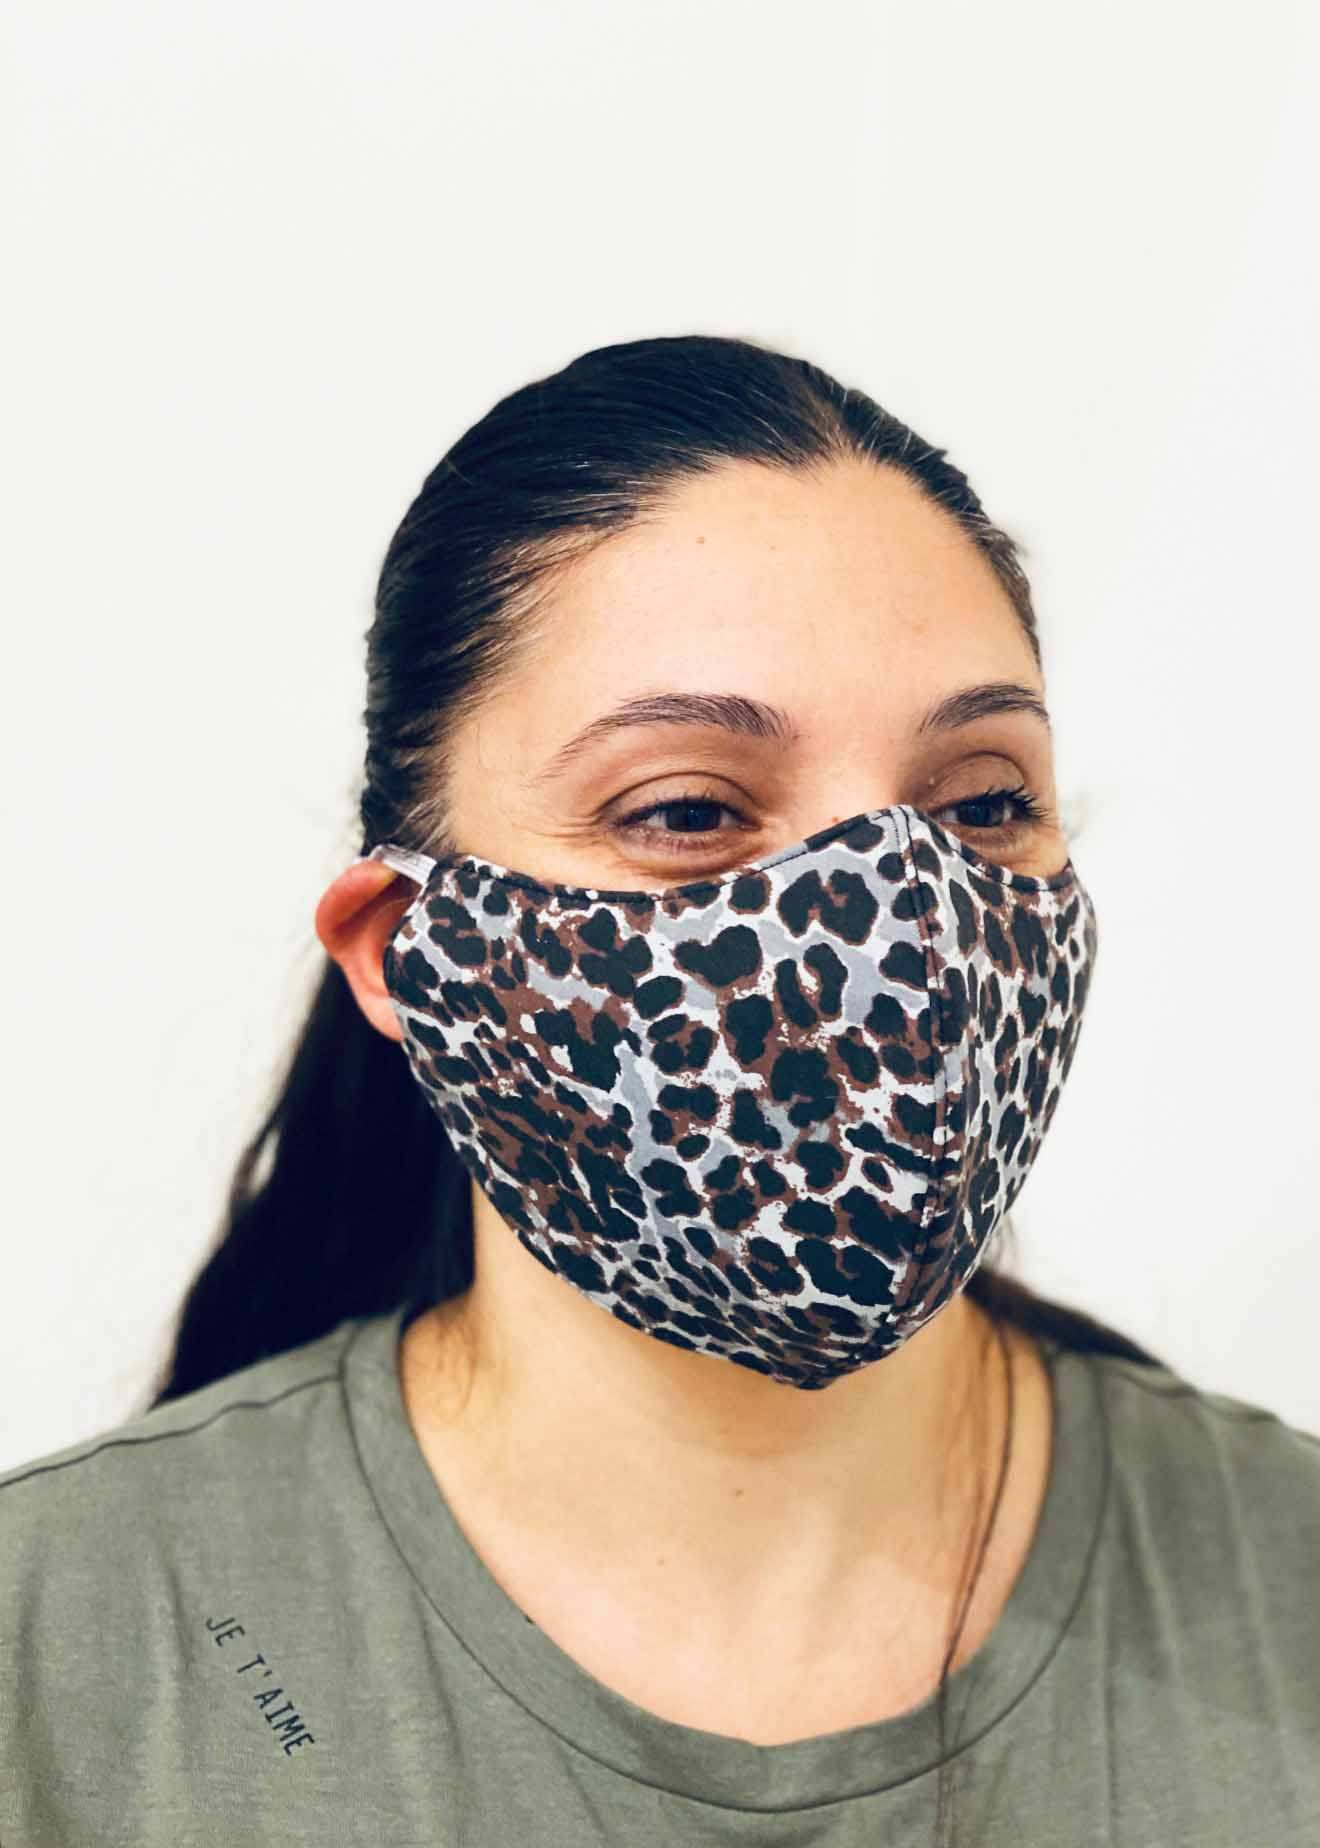 Ladies DHHS Leopard (Grey/Brown) Face Mask by Laundry Box Melbourne